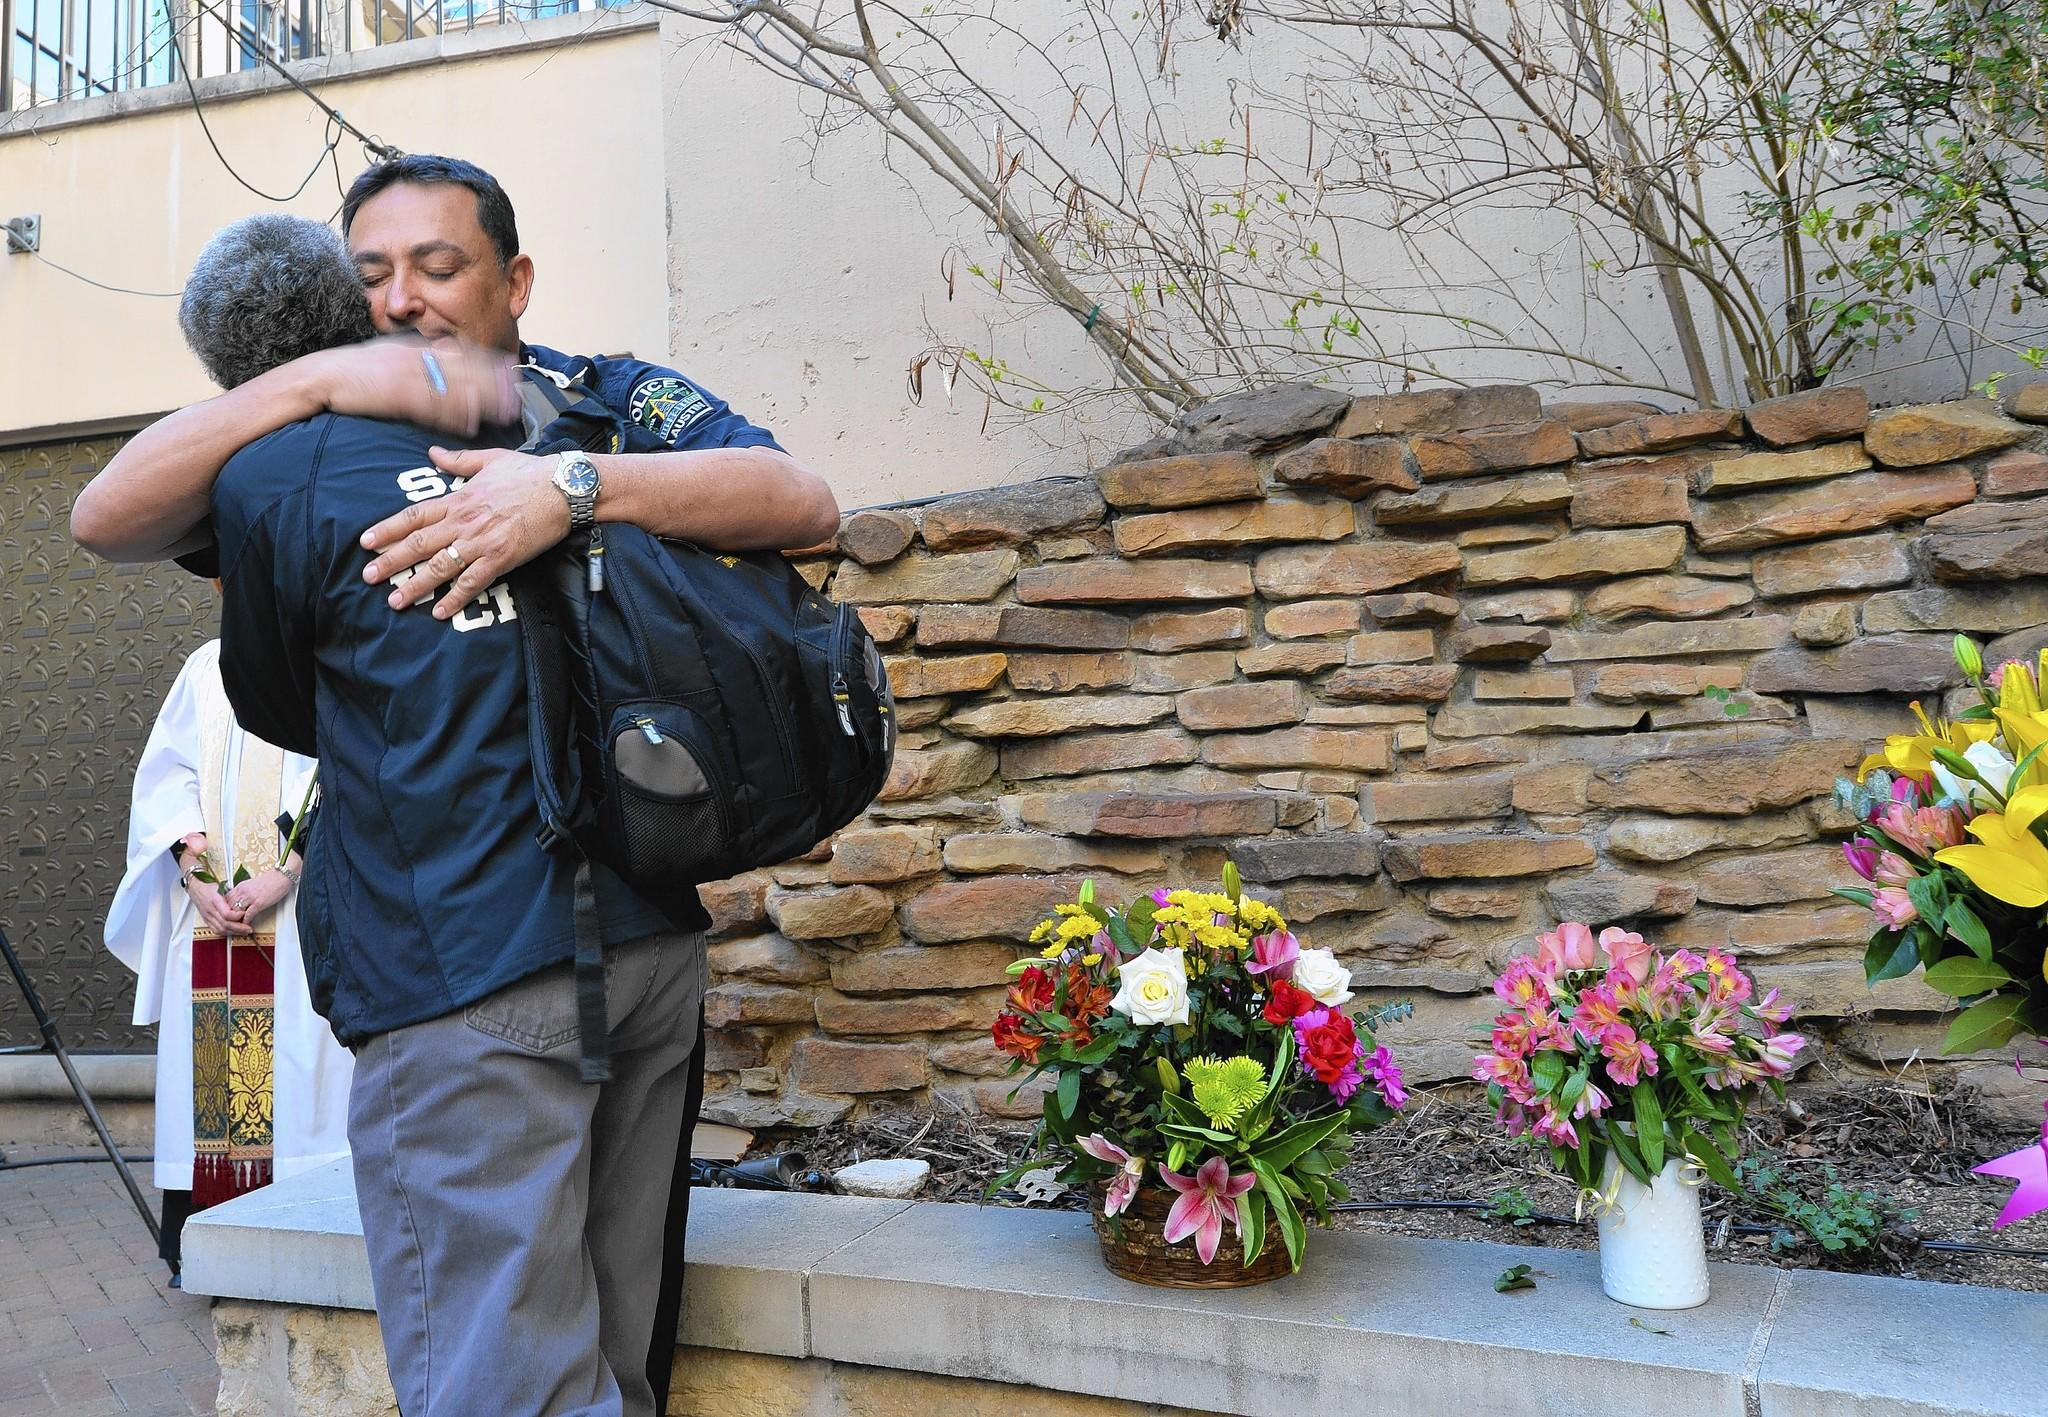 Austin Police Chief Art Acevedo hugs another mourner at prayer service at St. David's Episcopal Church following a deadly car crash at the South by Southwest Music, Film and Interactive Festival (SXSW) on Thursday in Austin, Texas.